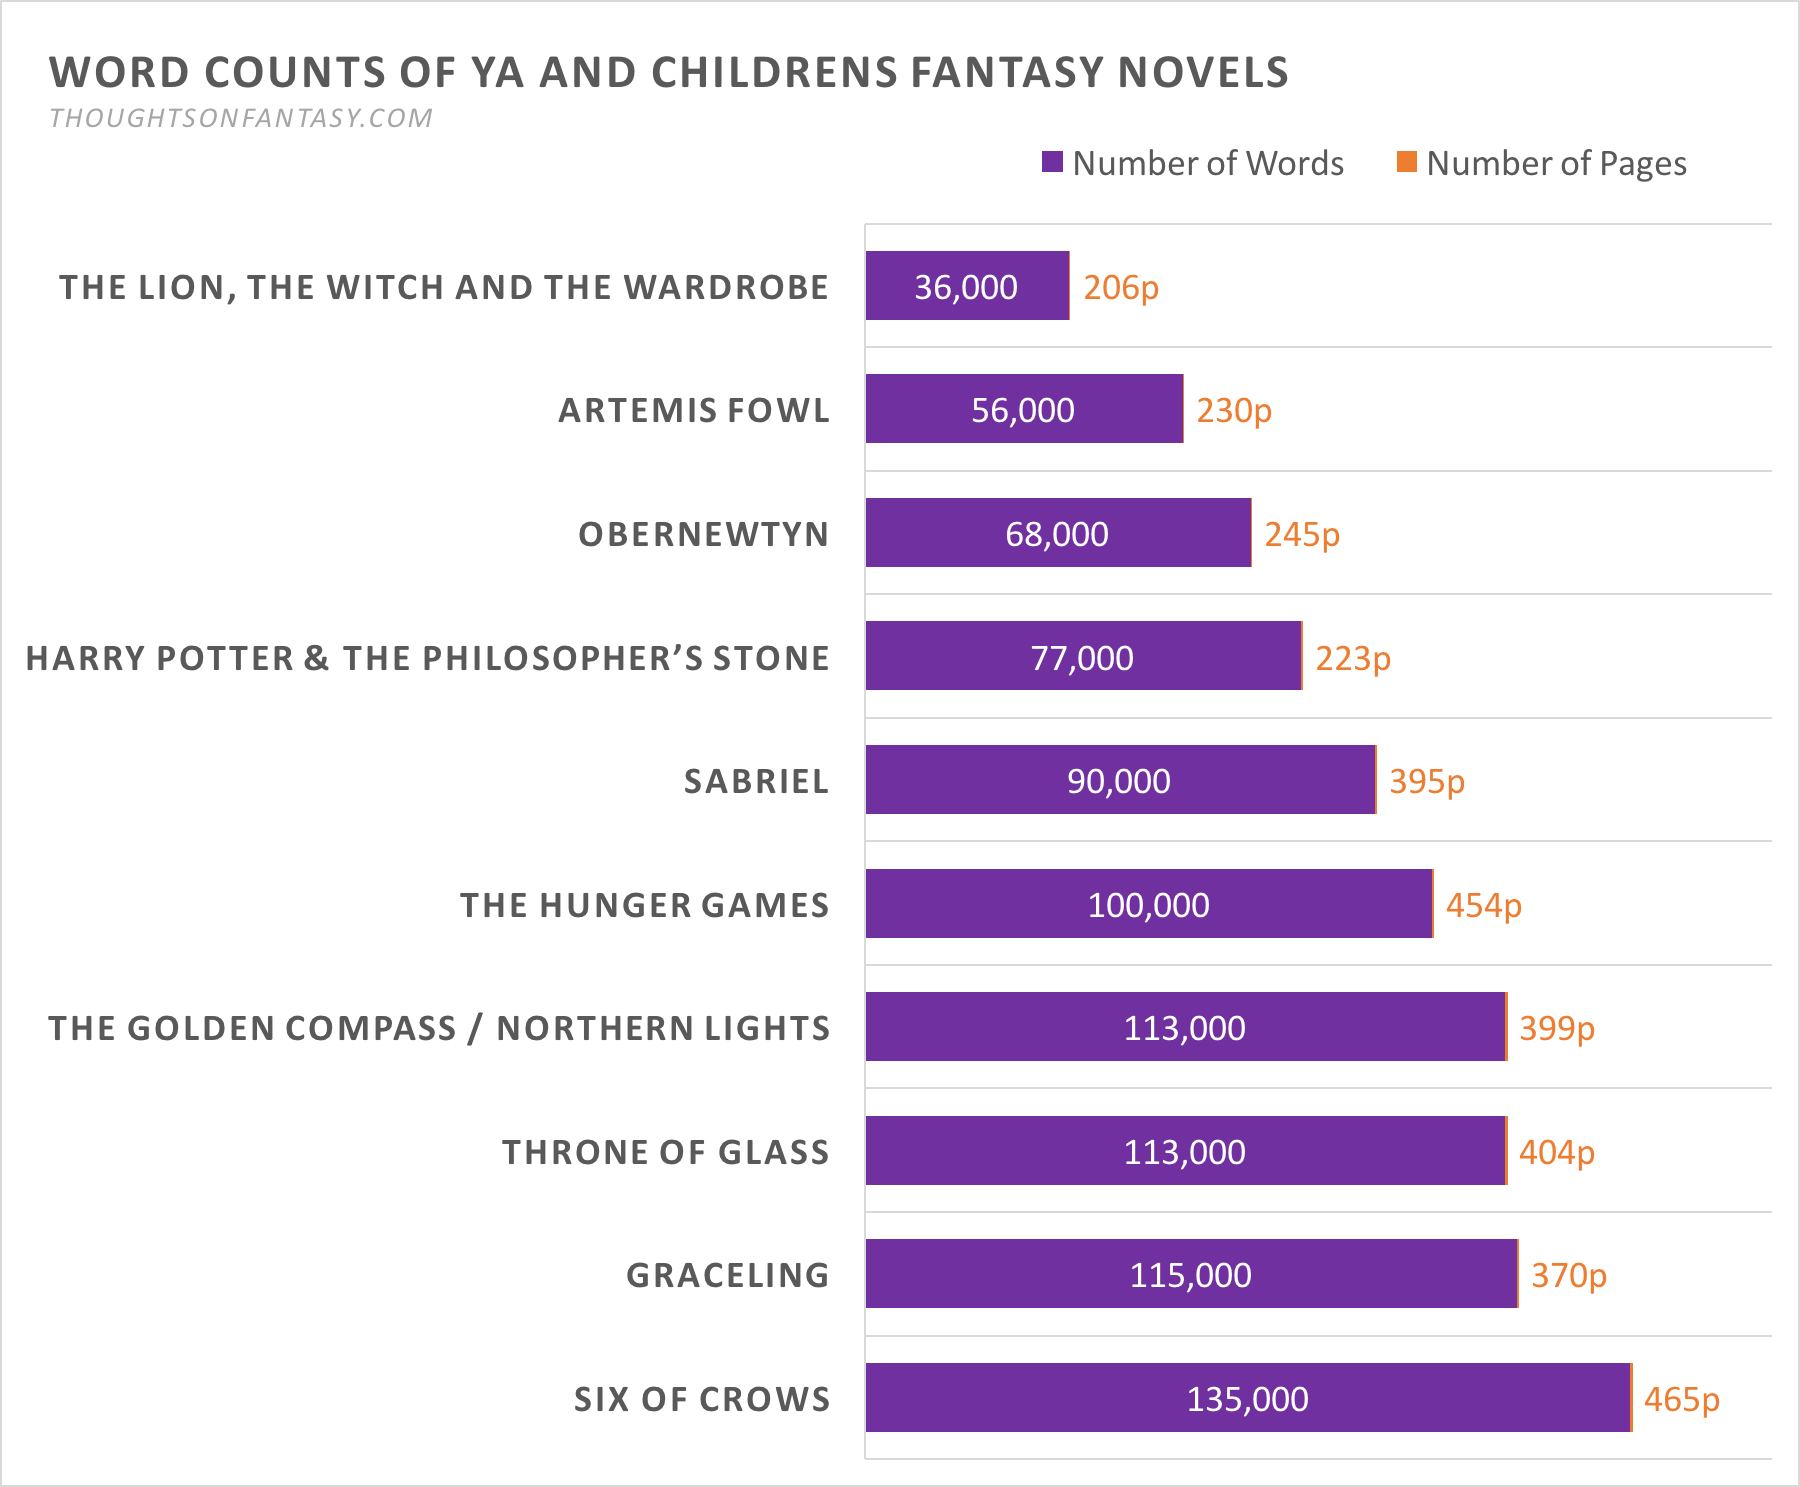 Word Counts For Ya And Childrens Fantasy Thoughts On Fantasy